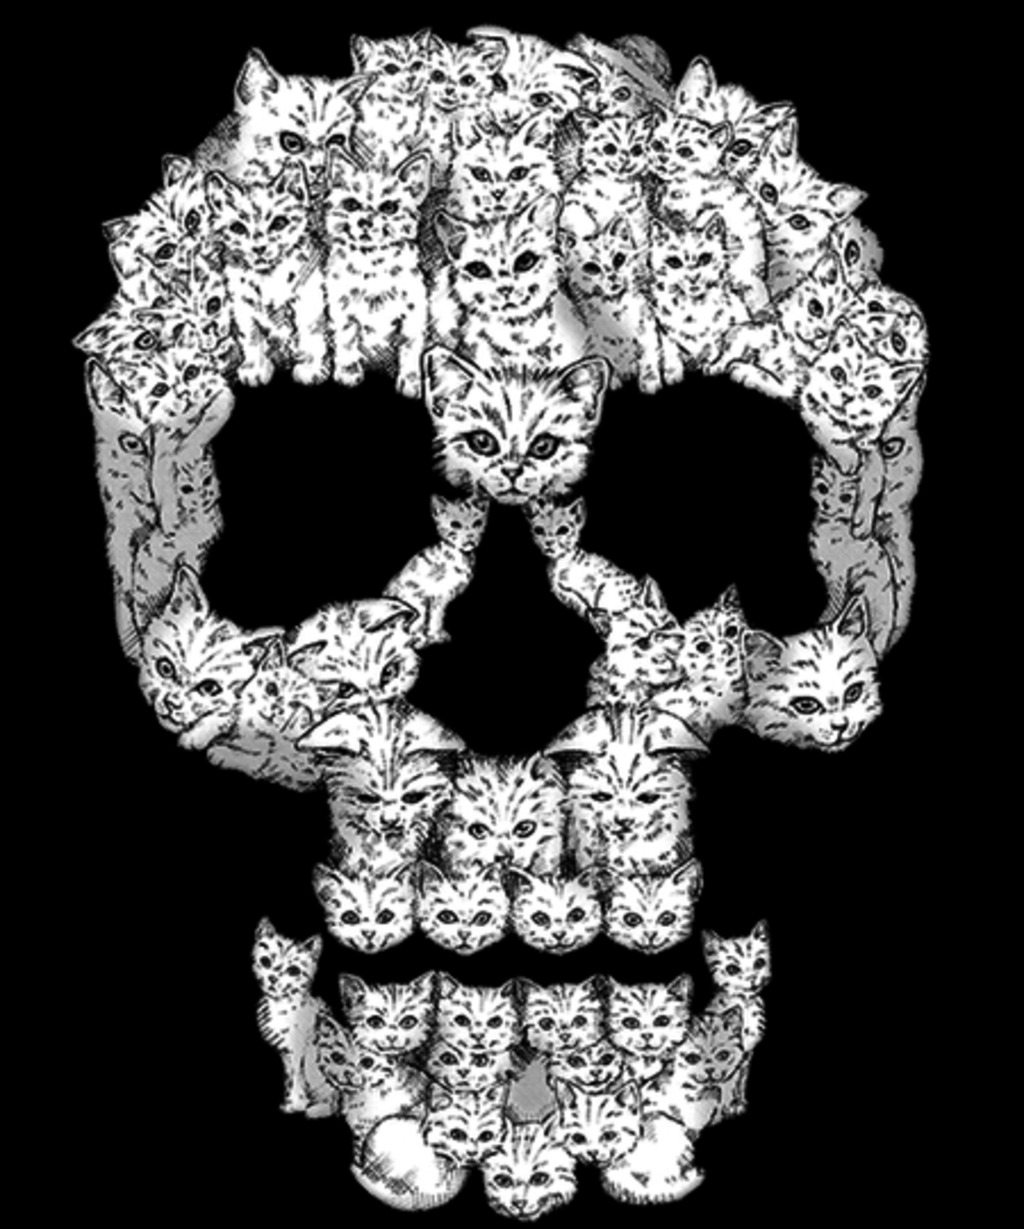 Qwertee: Skulls Are For Pussies